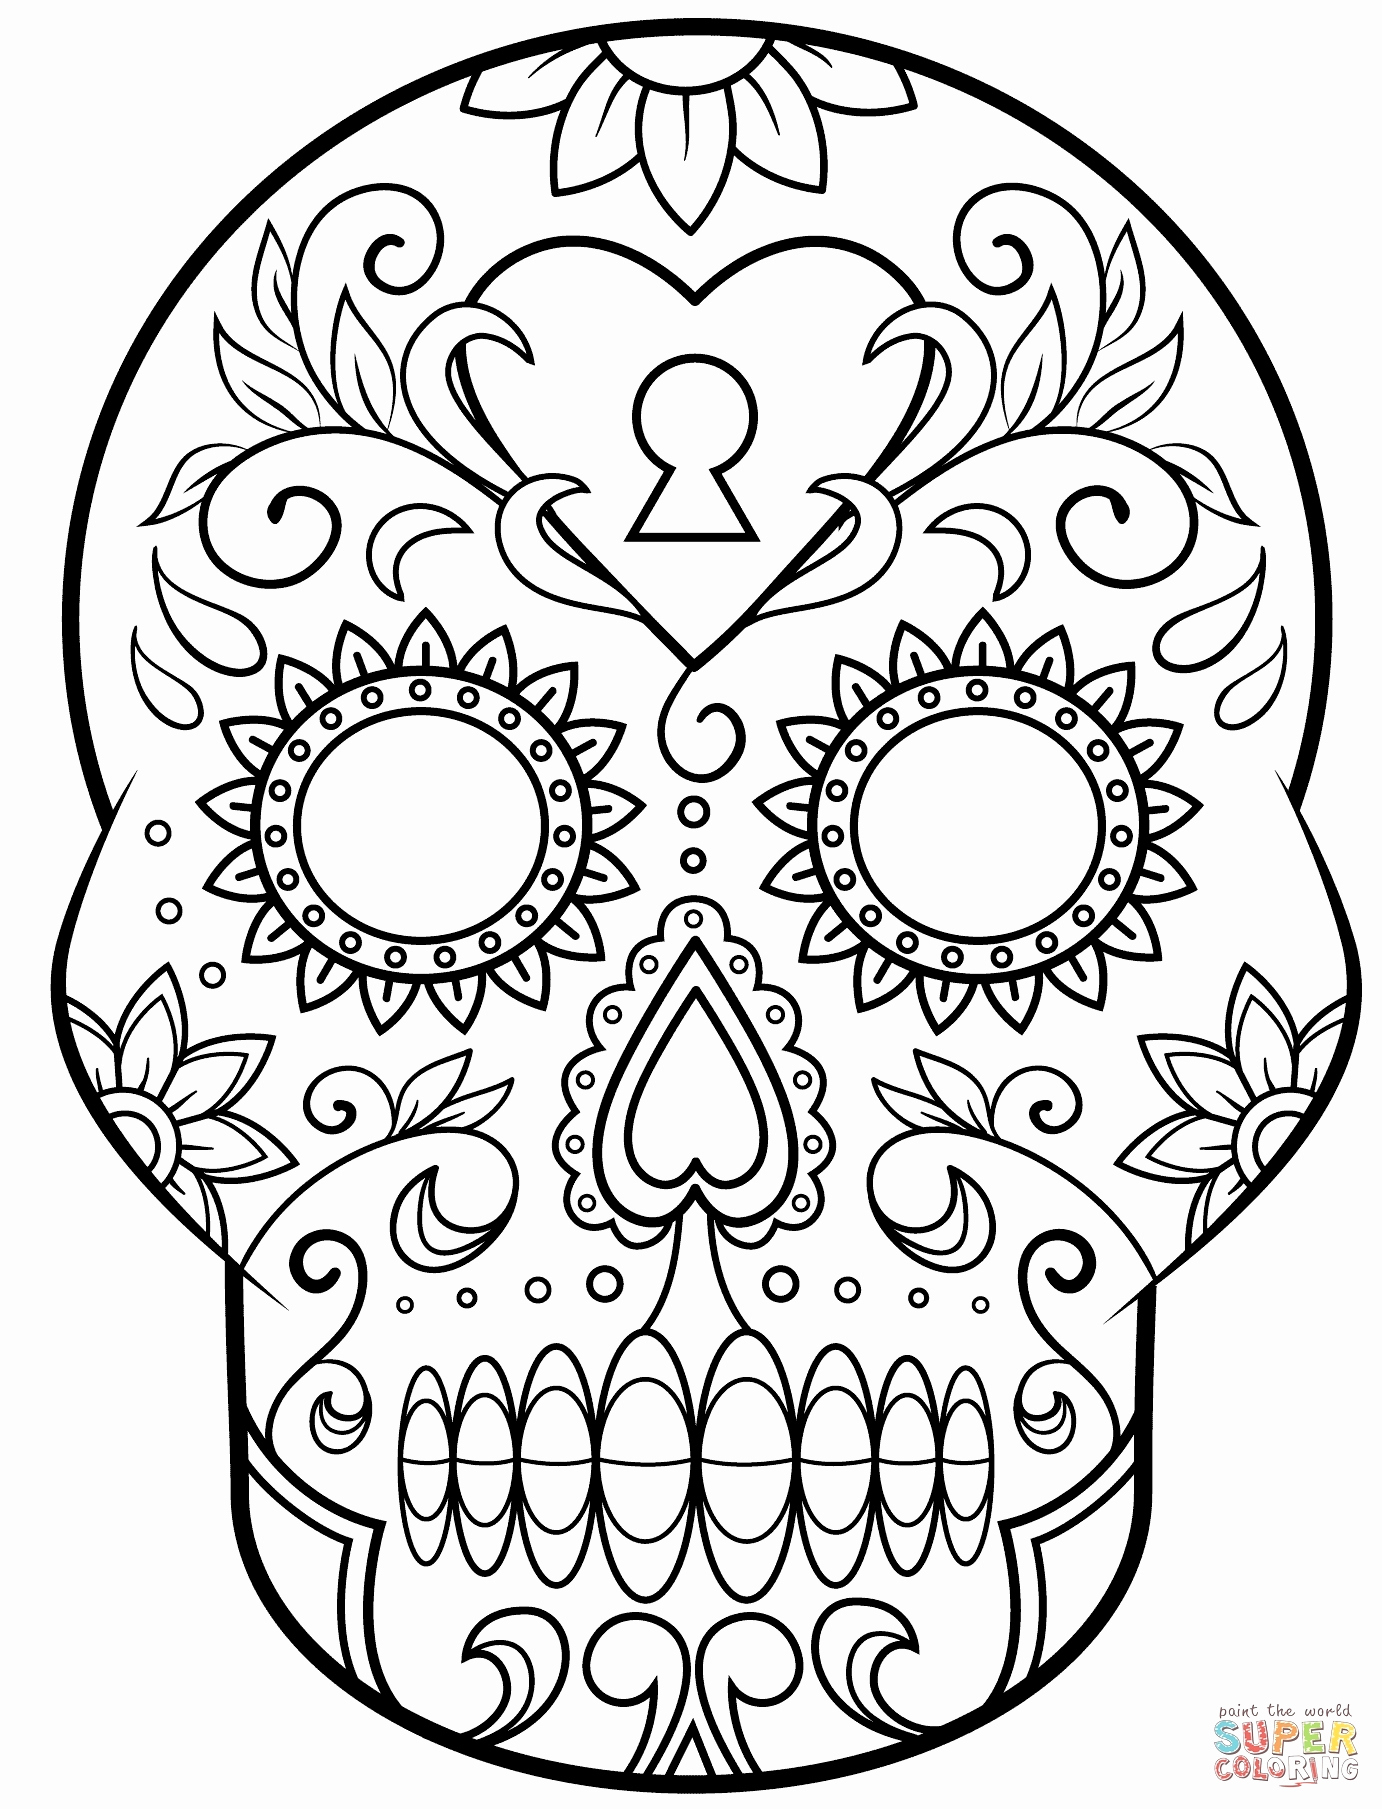 Halloween Coloring Pages Skeleton   Free Coloring Pages - Free Printable Skeleton Coloring Pages